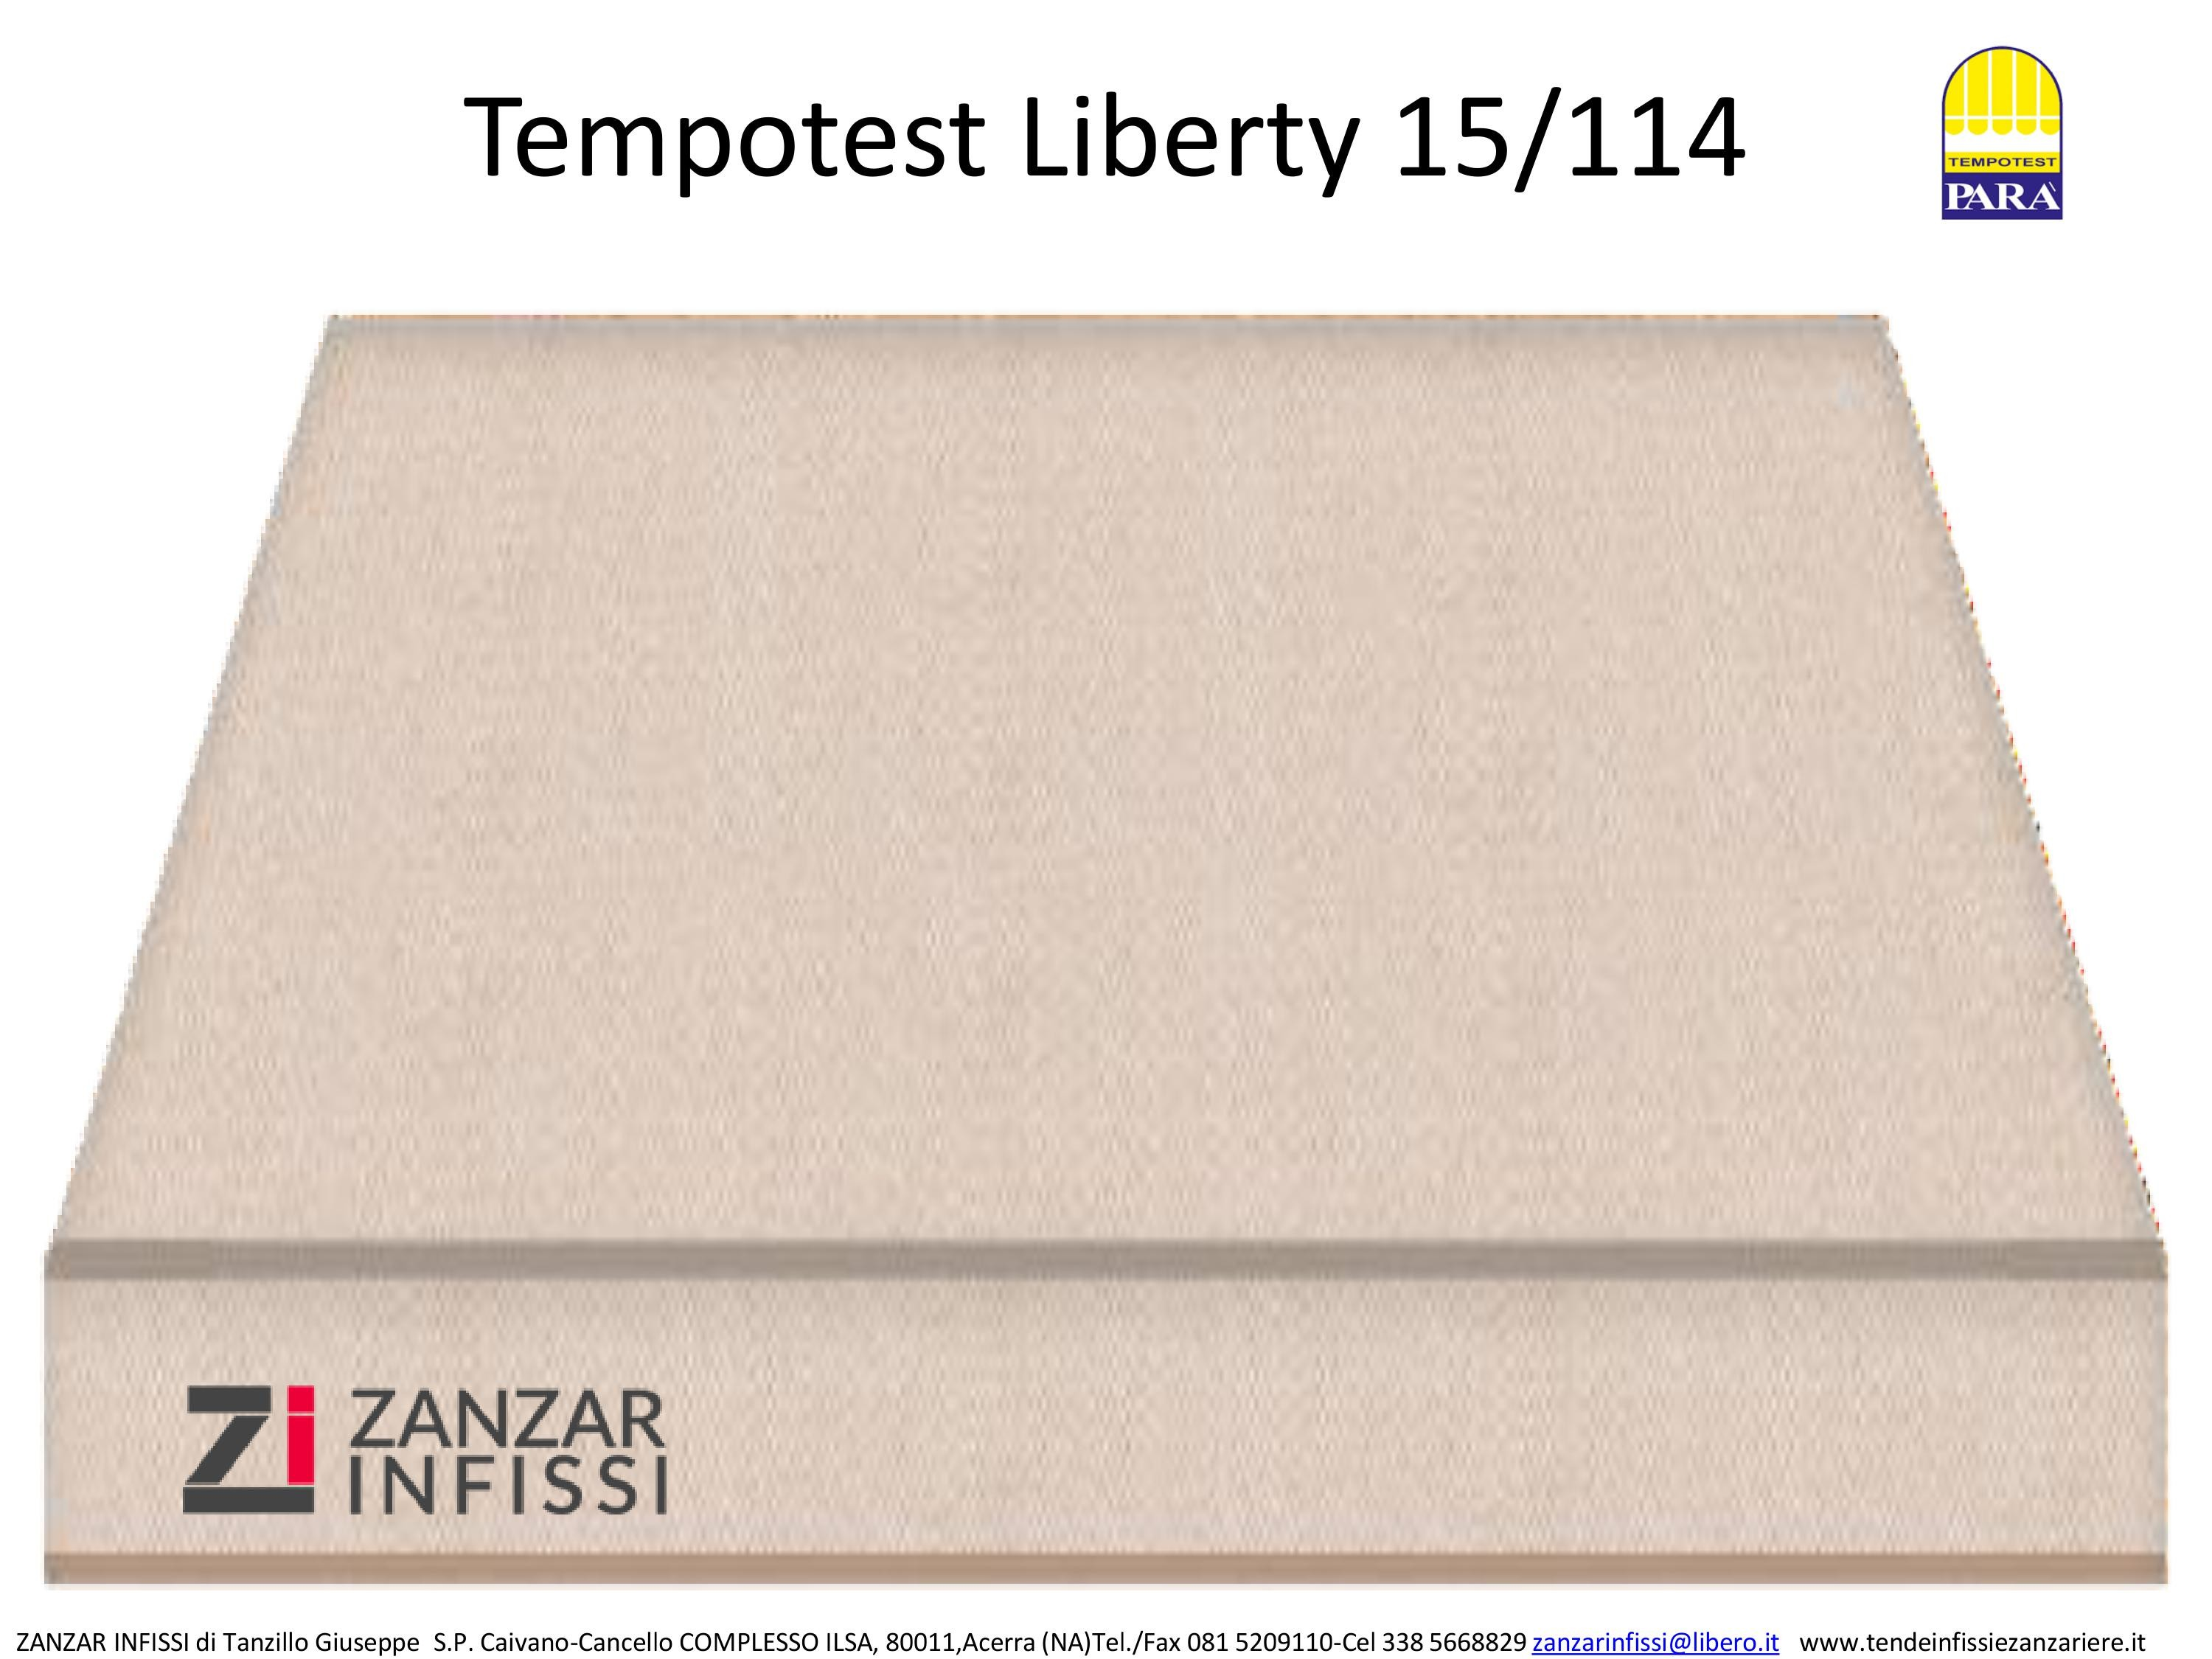 Tempotest Liberty 15/114